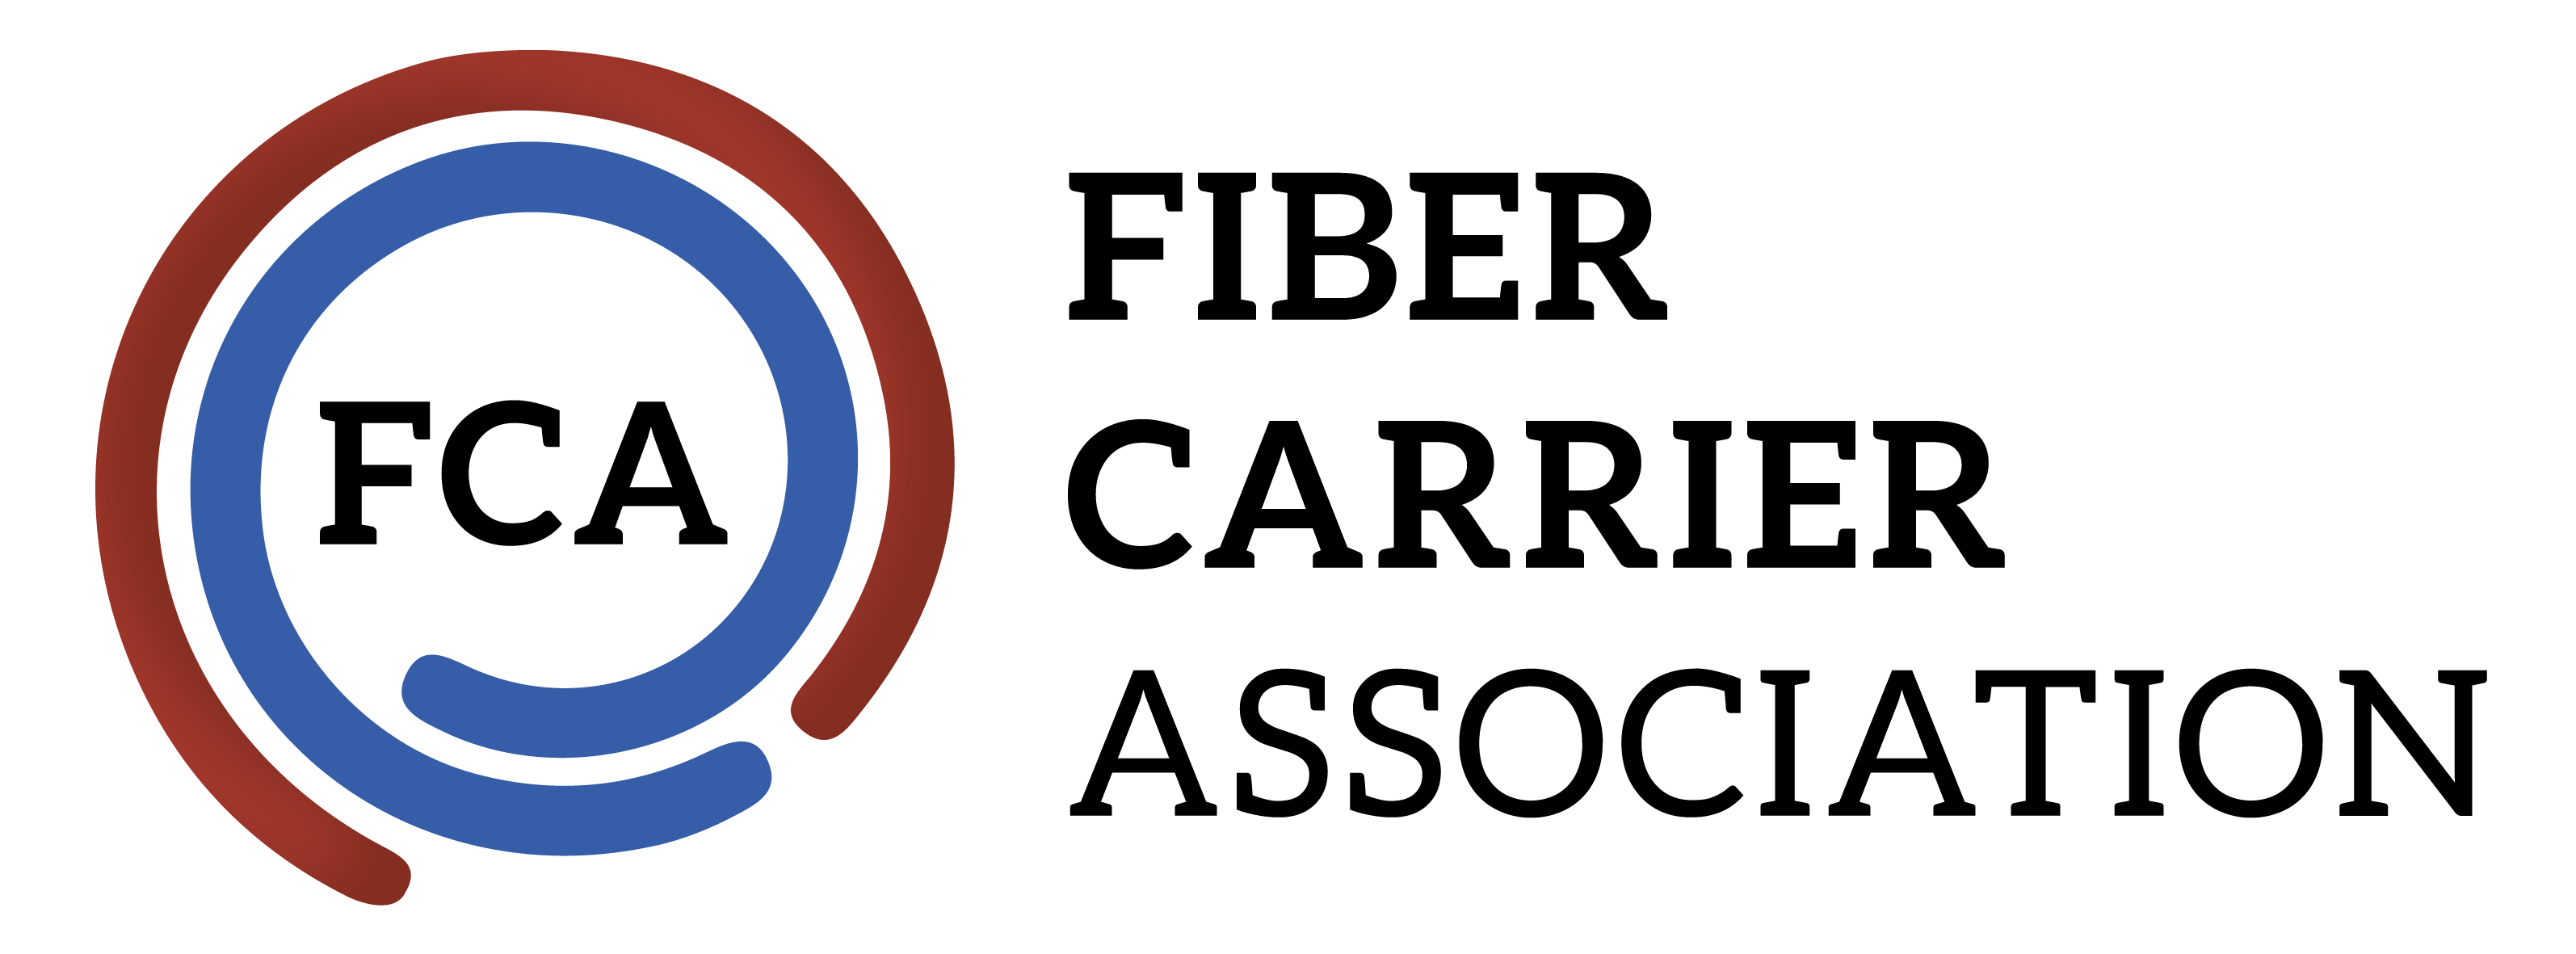 Fiber Carrier Association